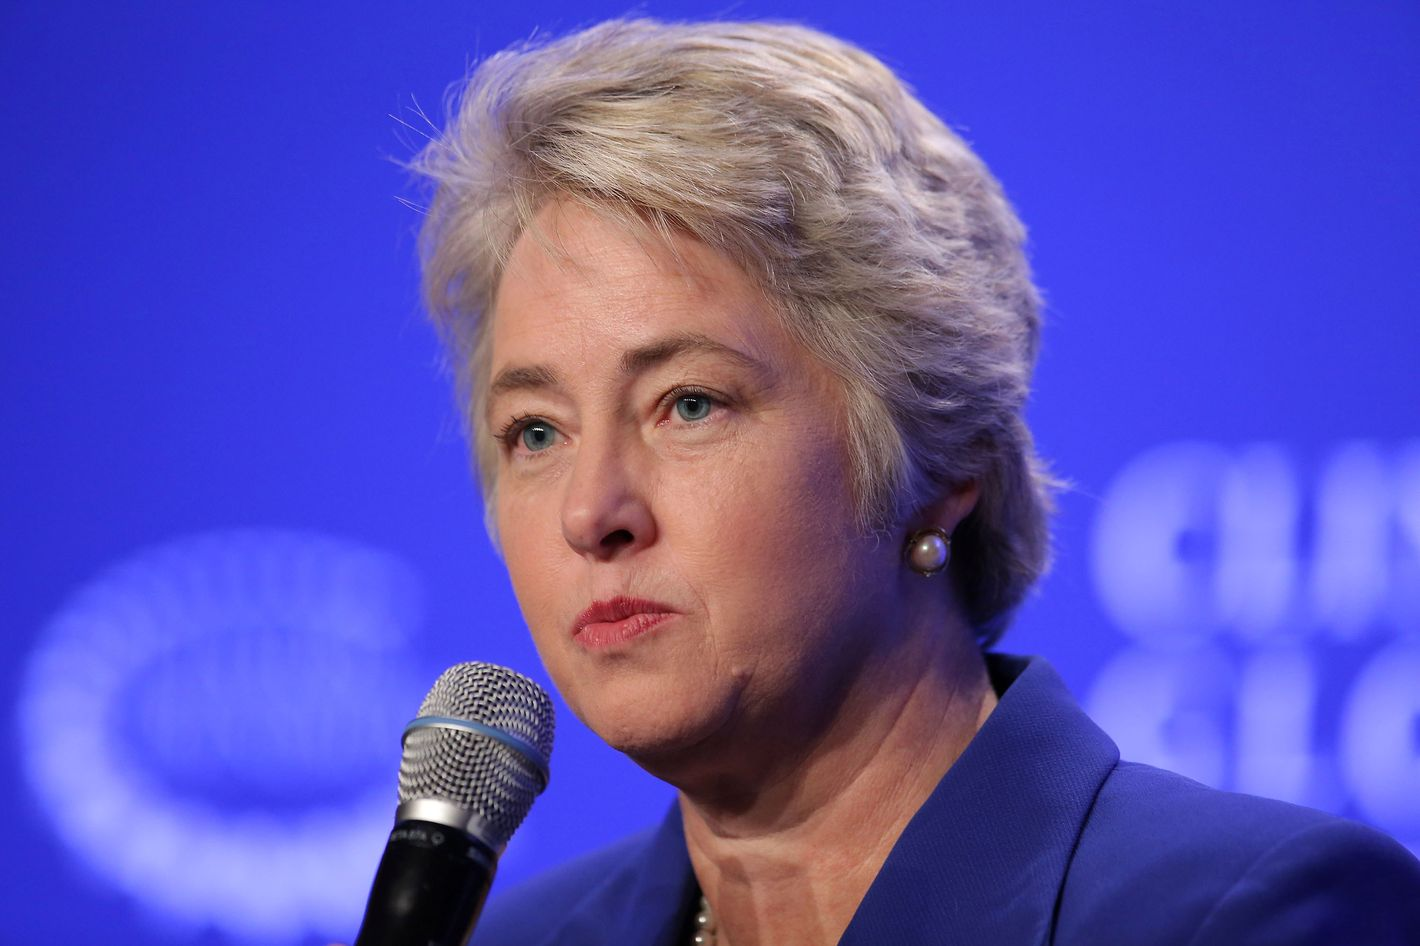 """Mayor Annise Parker of Houston speaks at a press conference on """"Mayor's National Climate Change Action Agenda during the second day of the Clinton Global Initiative's 10th Annual Meeting at the Sheraton New York Hotel & Towers on September 22, 2014 in New York City."""